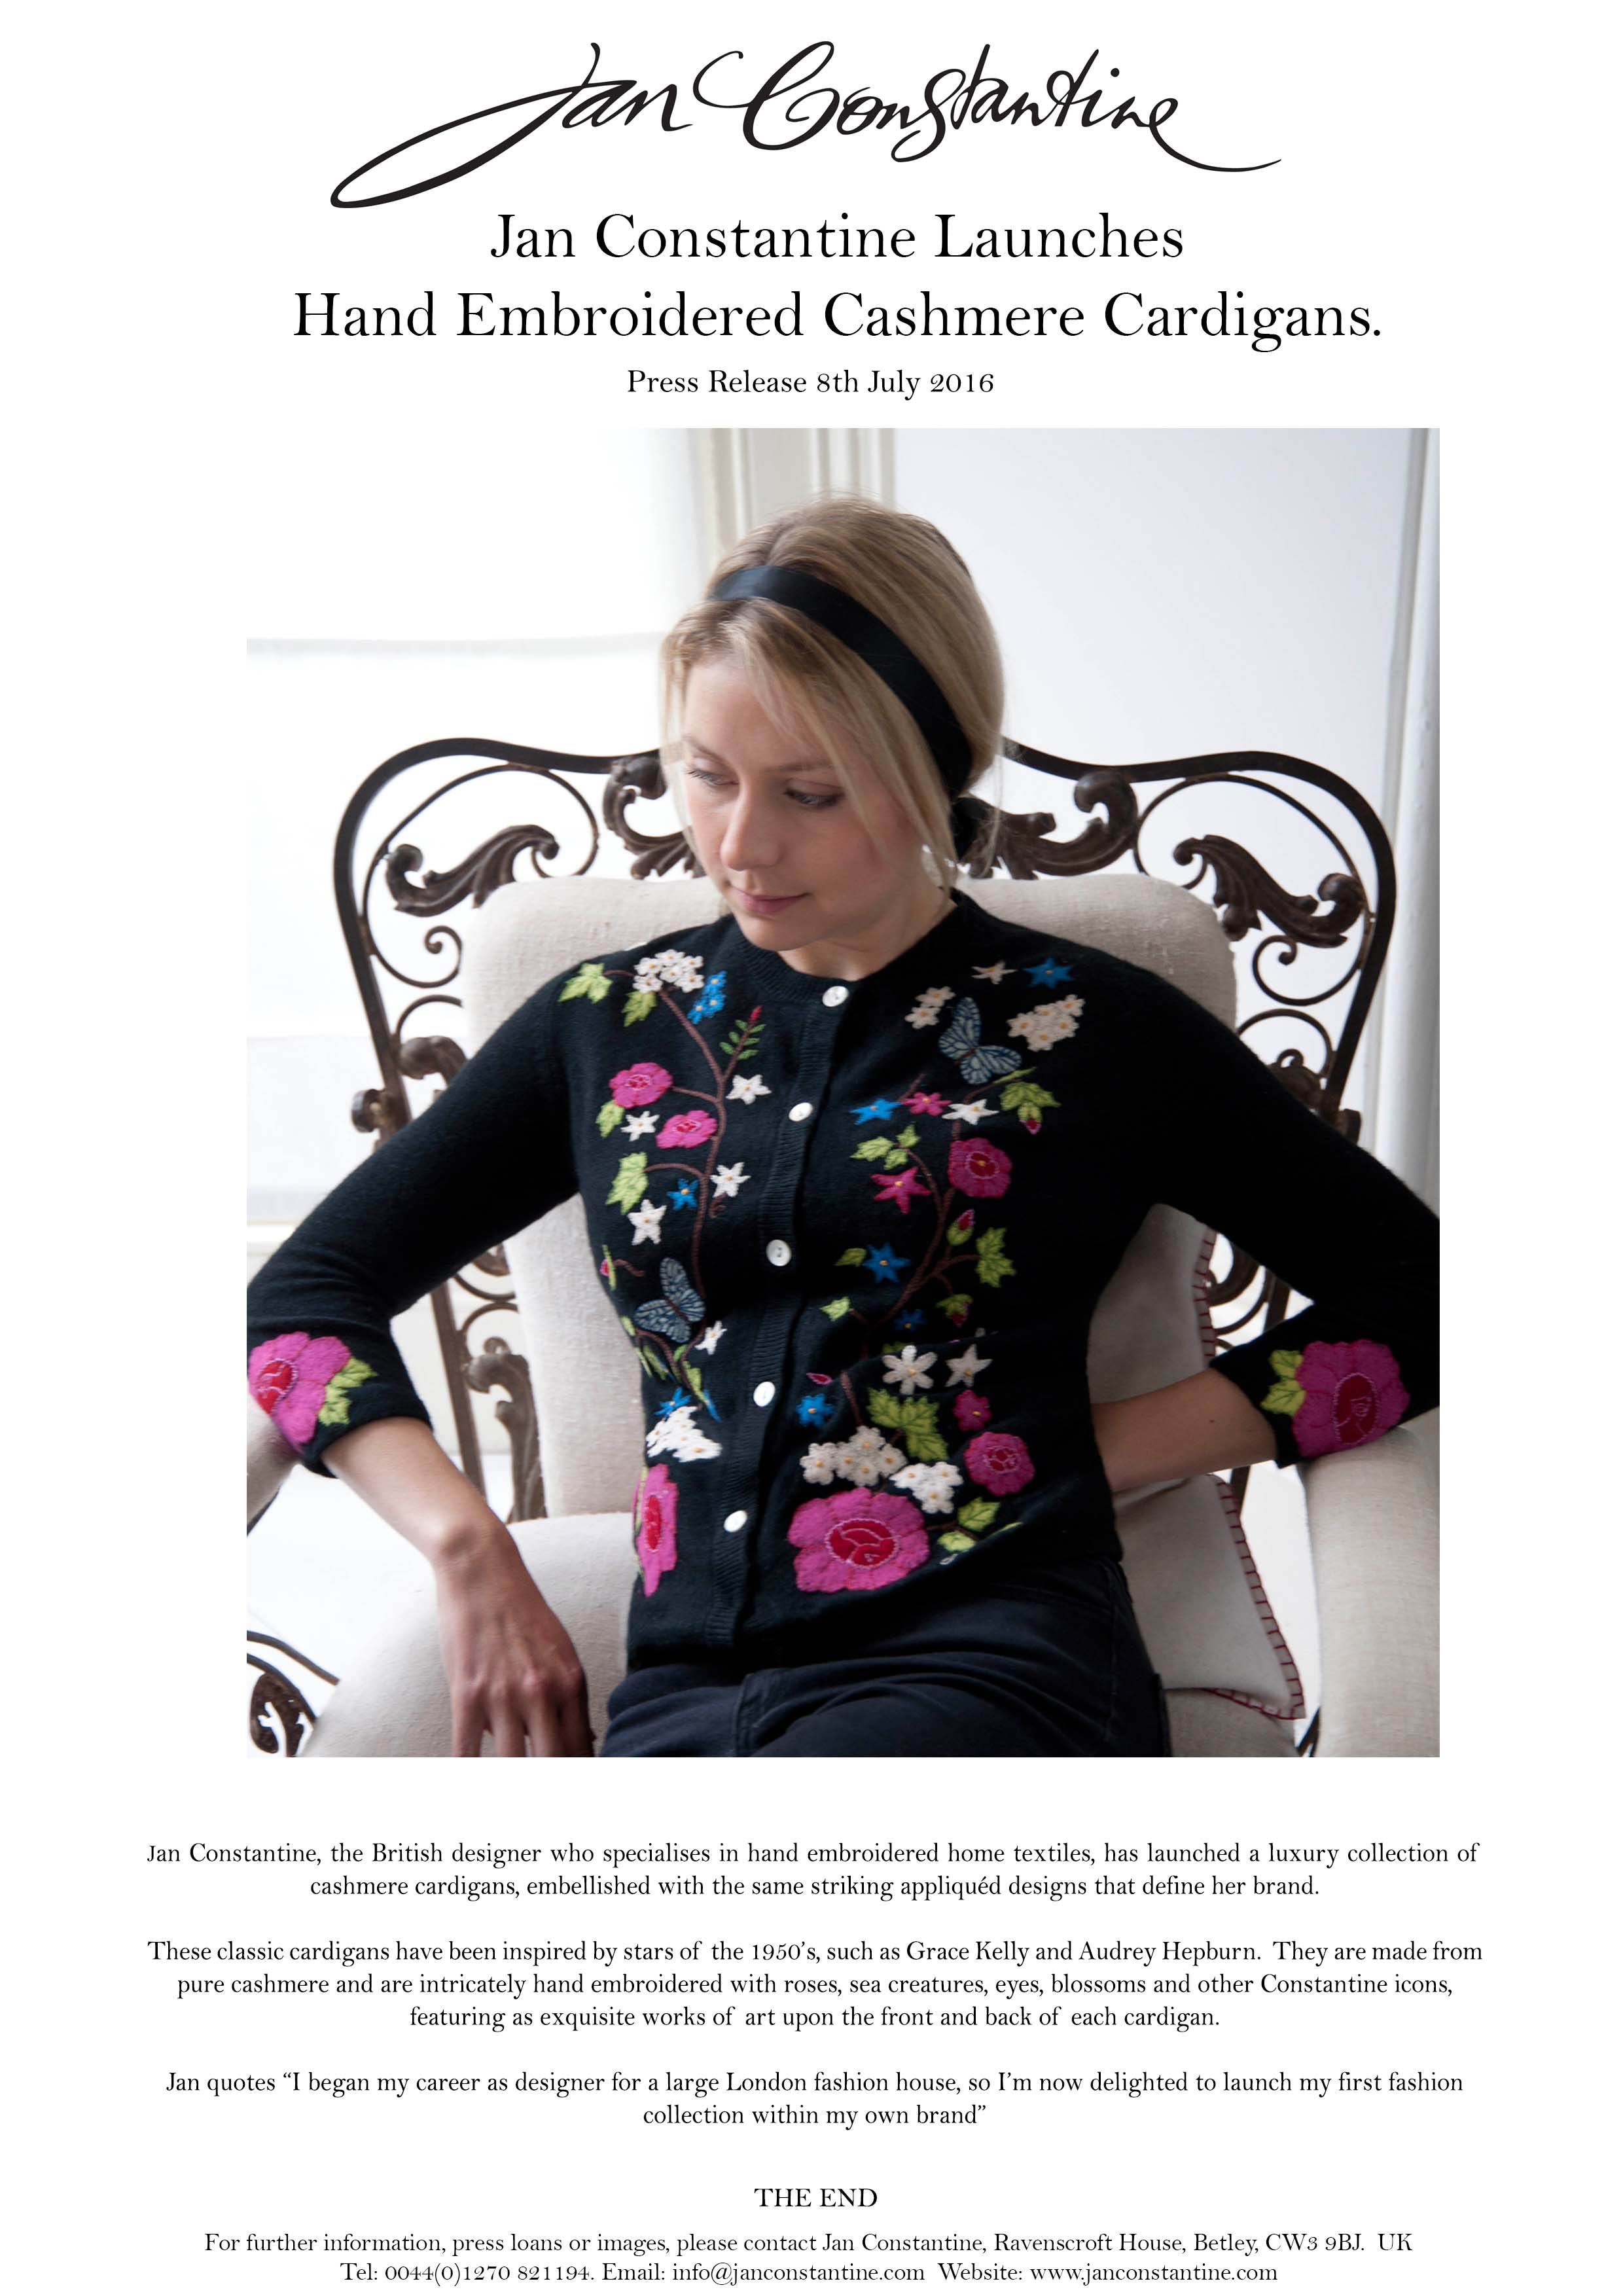 floral-cashmere-cardigan-press-release-launch.jpg